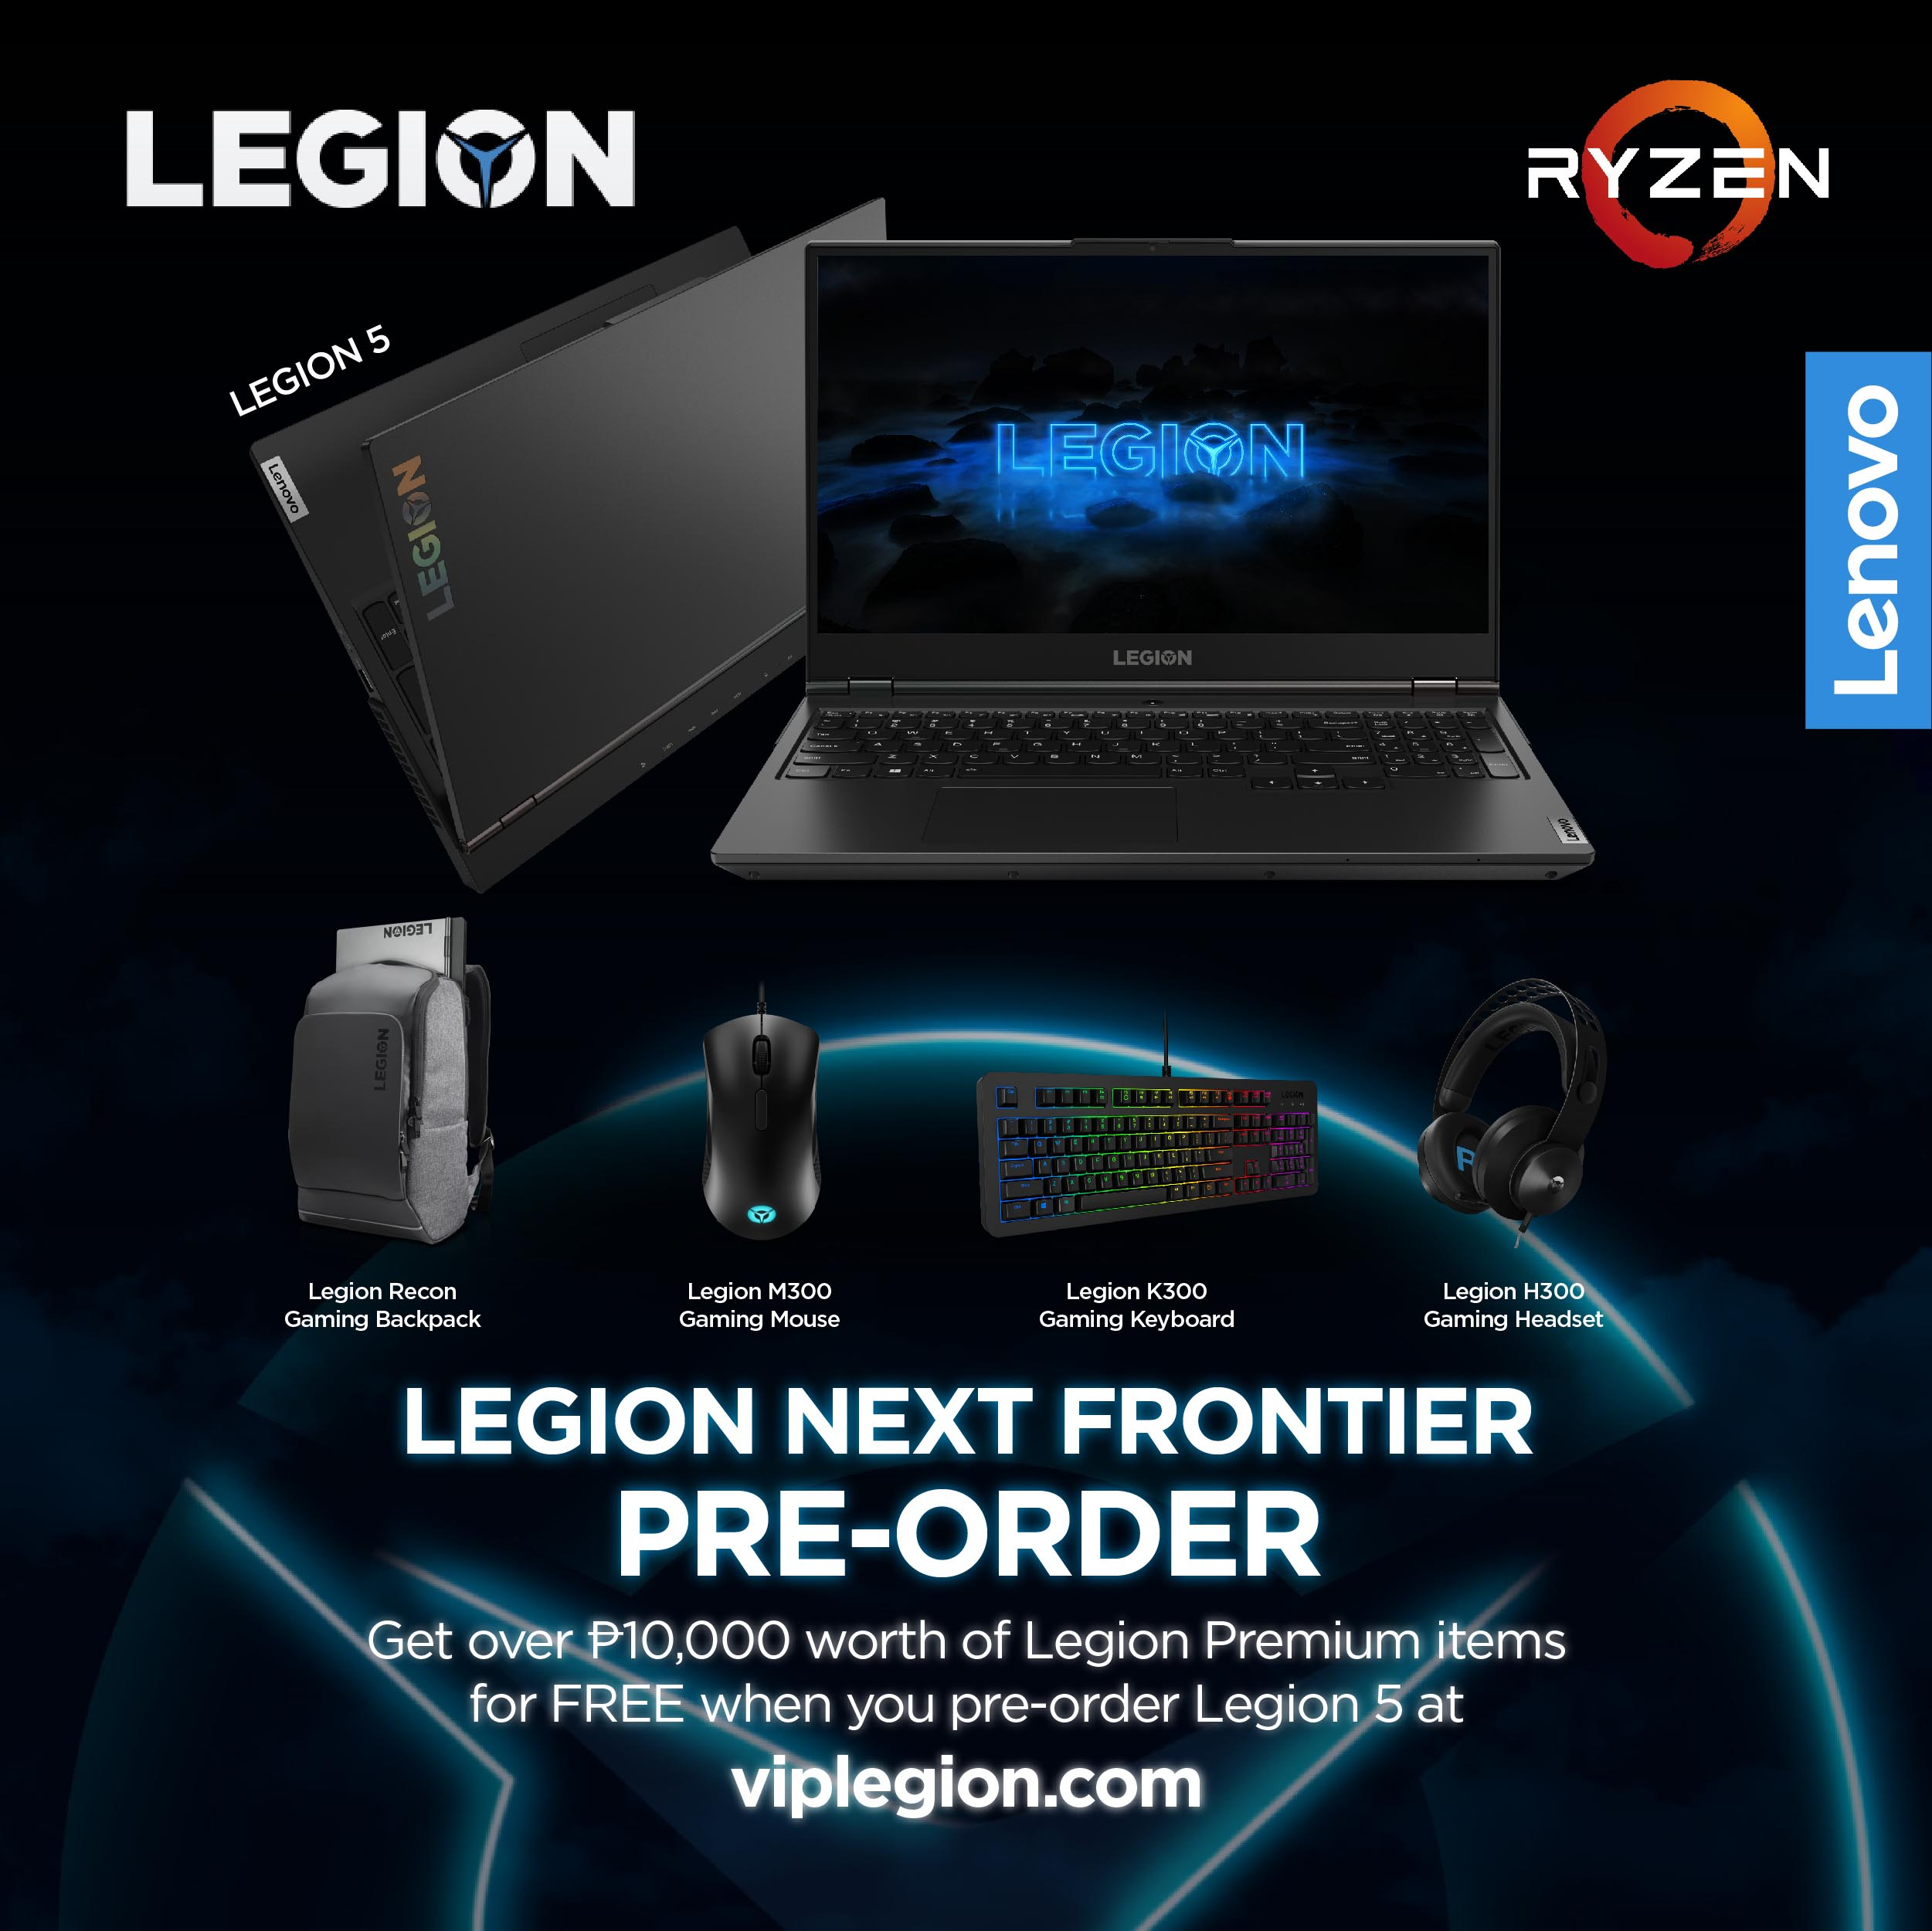 lenovo-legion-gaming-laptops-and-tower-pre-order-details